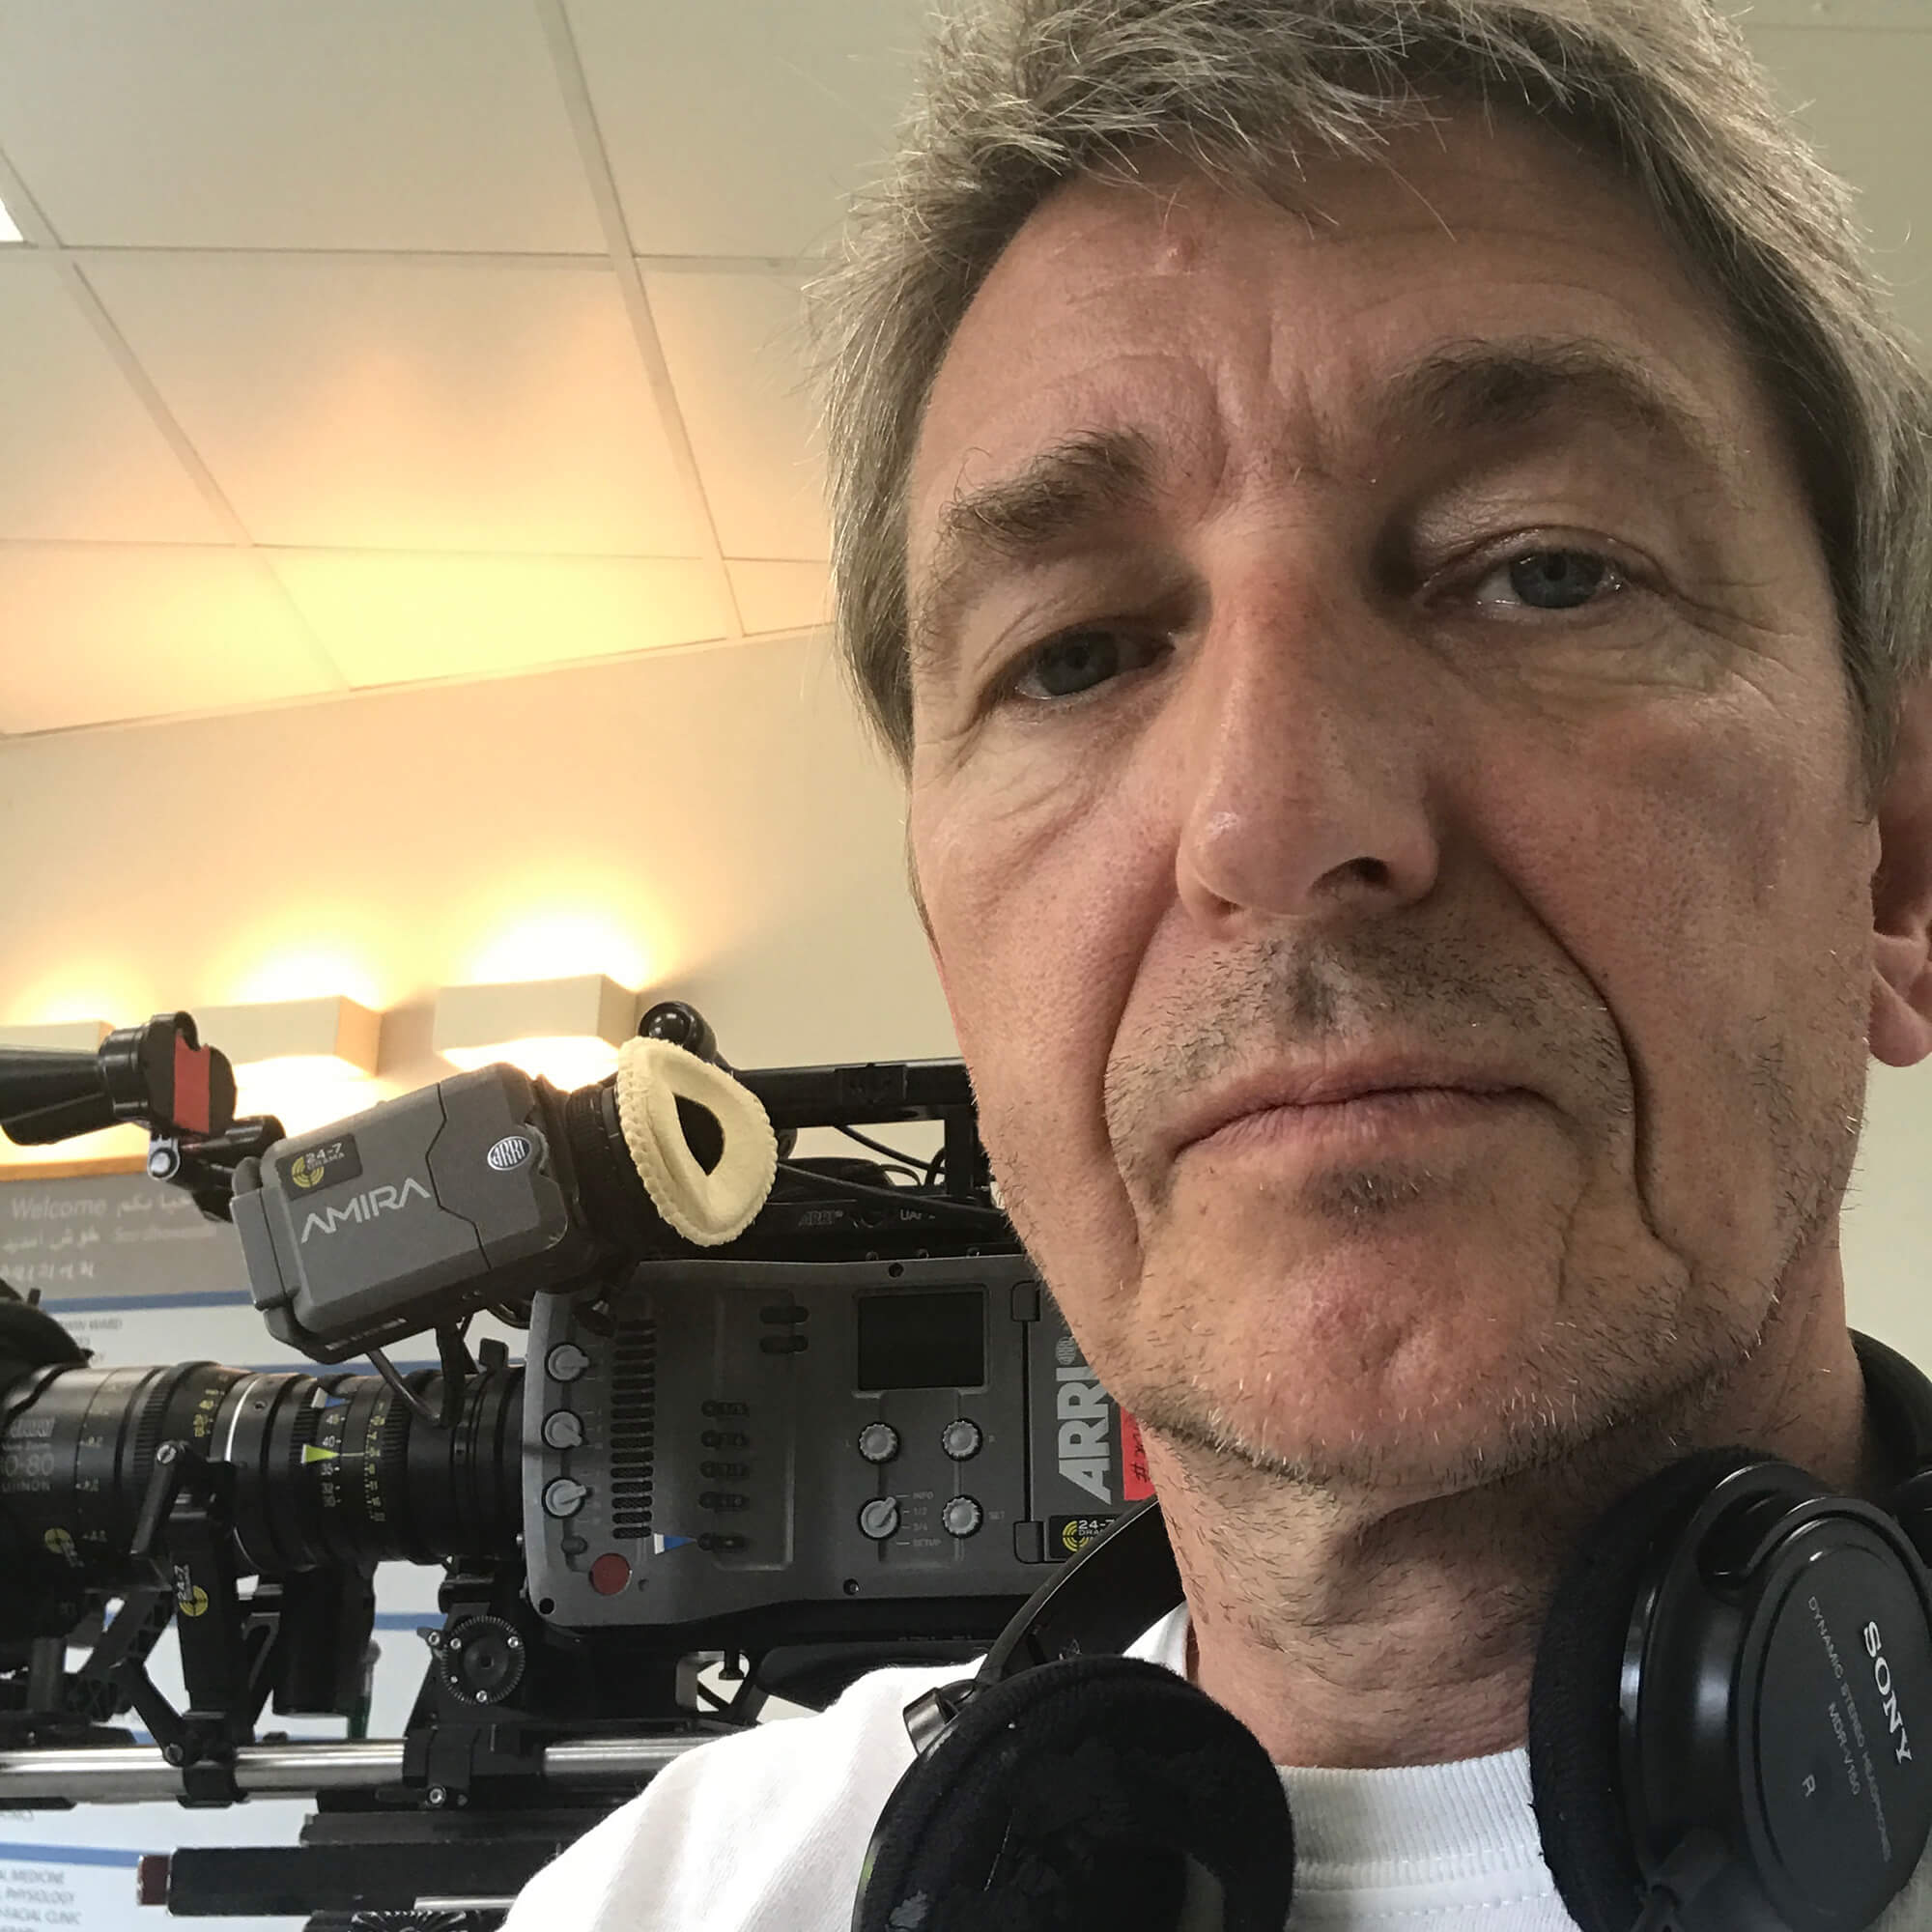 Nigel wearing headphones around his neck standing next to a video camera on a tripod.